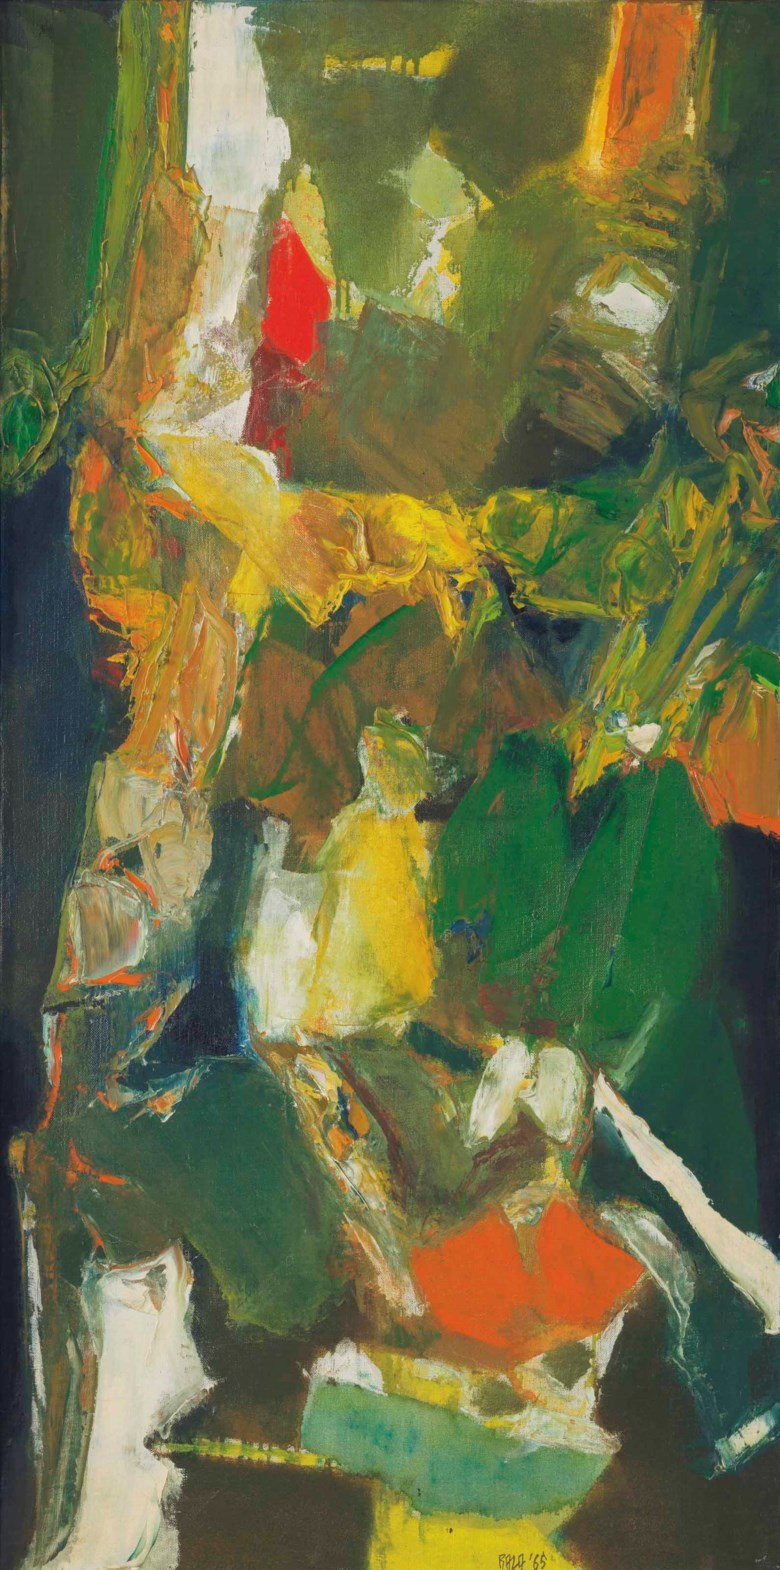 Syed Haider Raza (1922-2016), Untitled, painted in 1965. 39⅛ x 19½  in (99.5 x 49.6  cm). Estimate $60,000-80,000. This lot is offered in South Asian Modern + Contemporary Art on 21 March 2018  at Christie's in New York